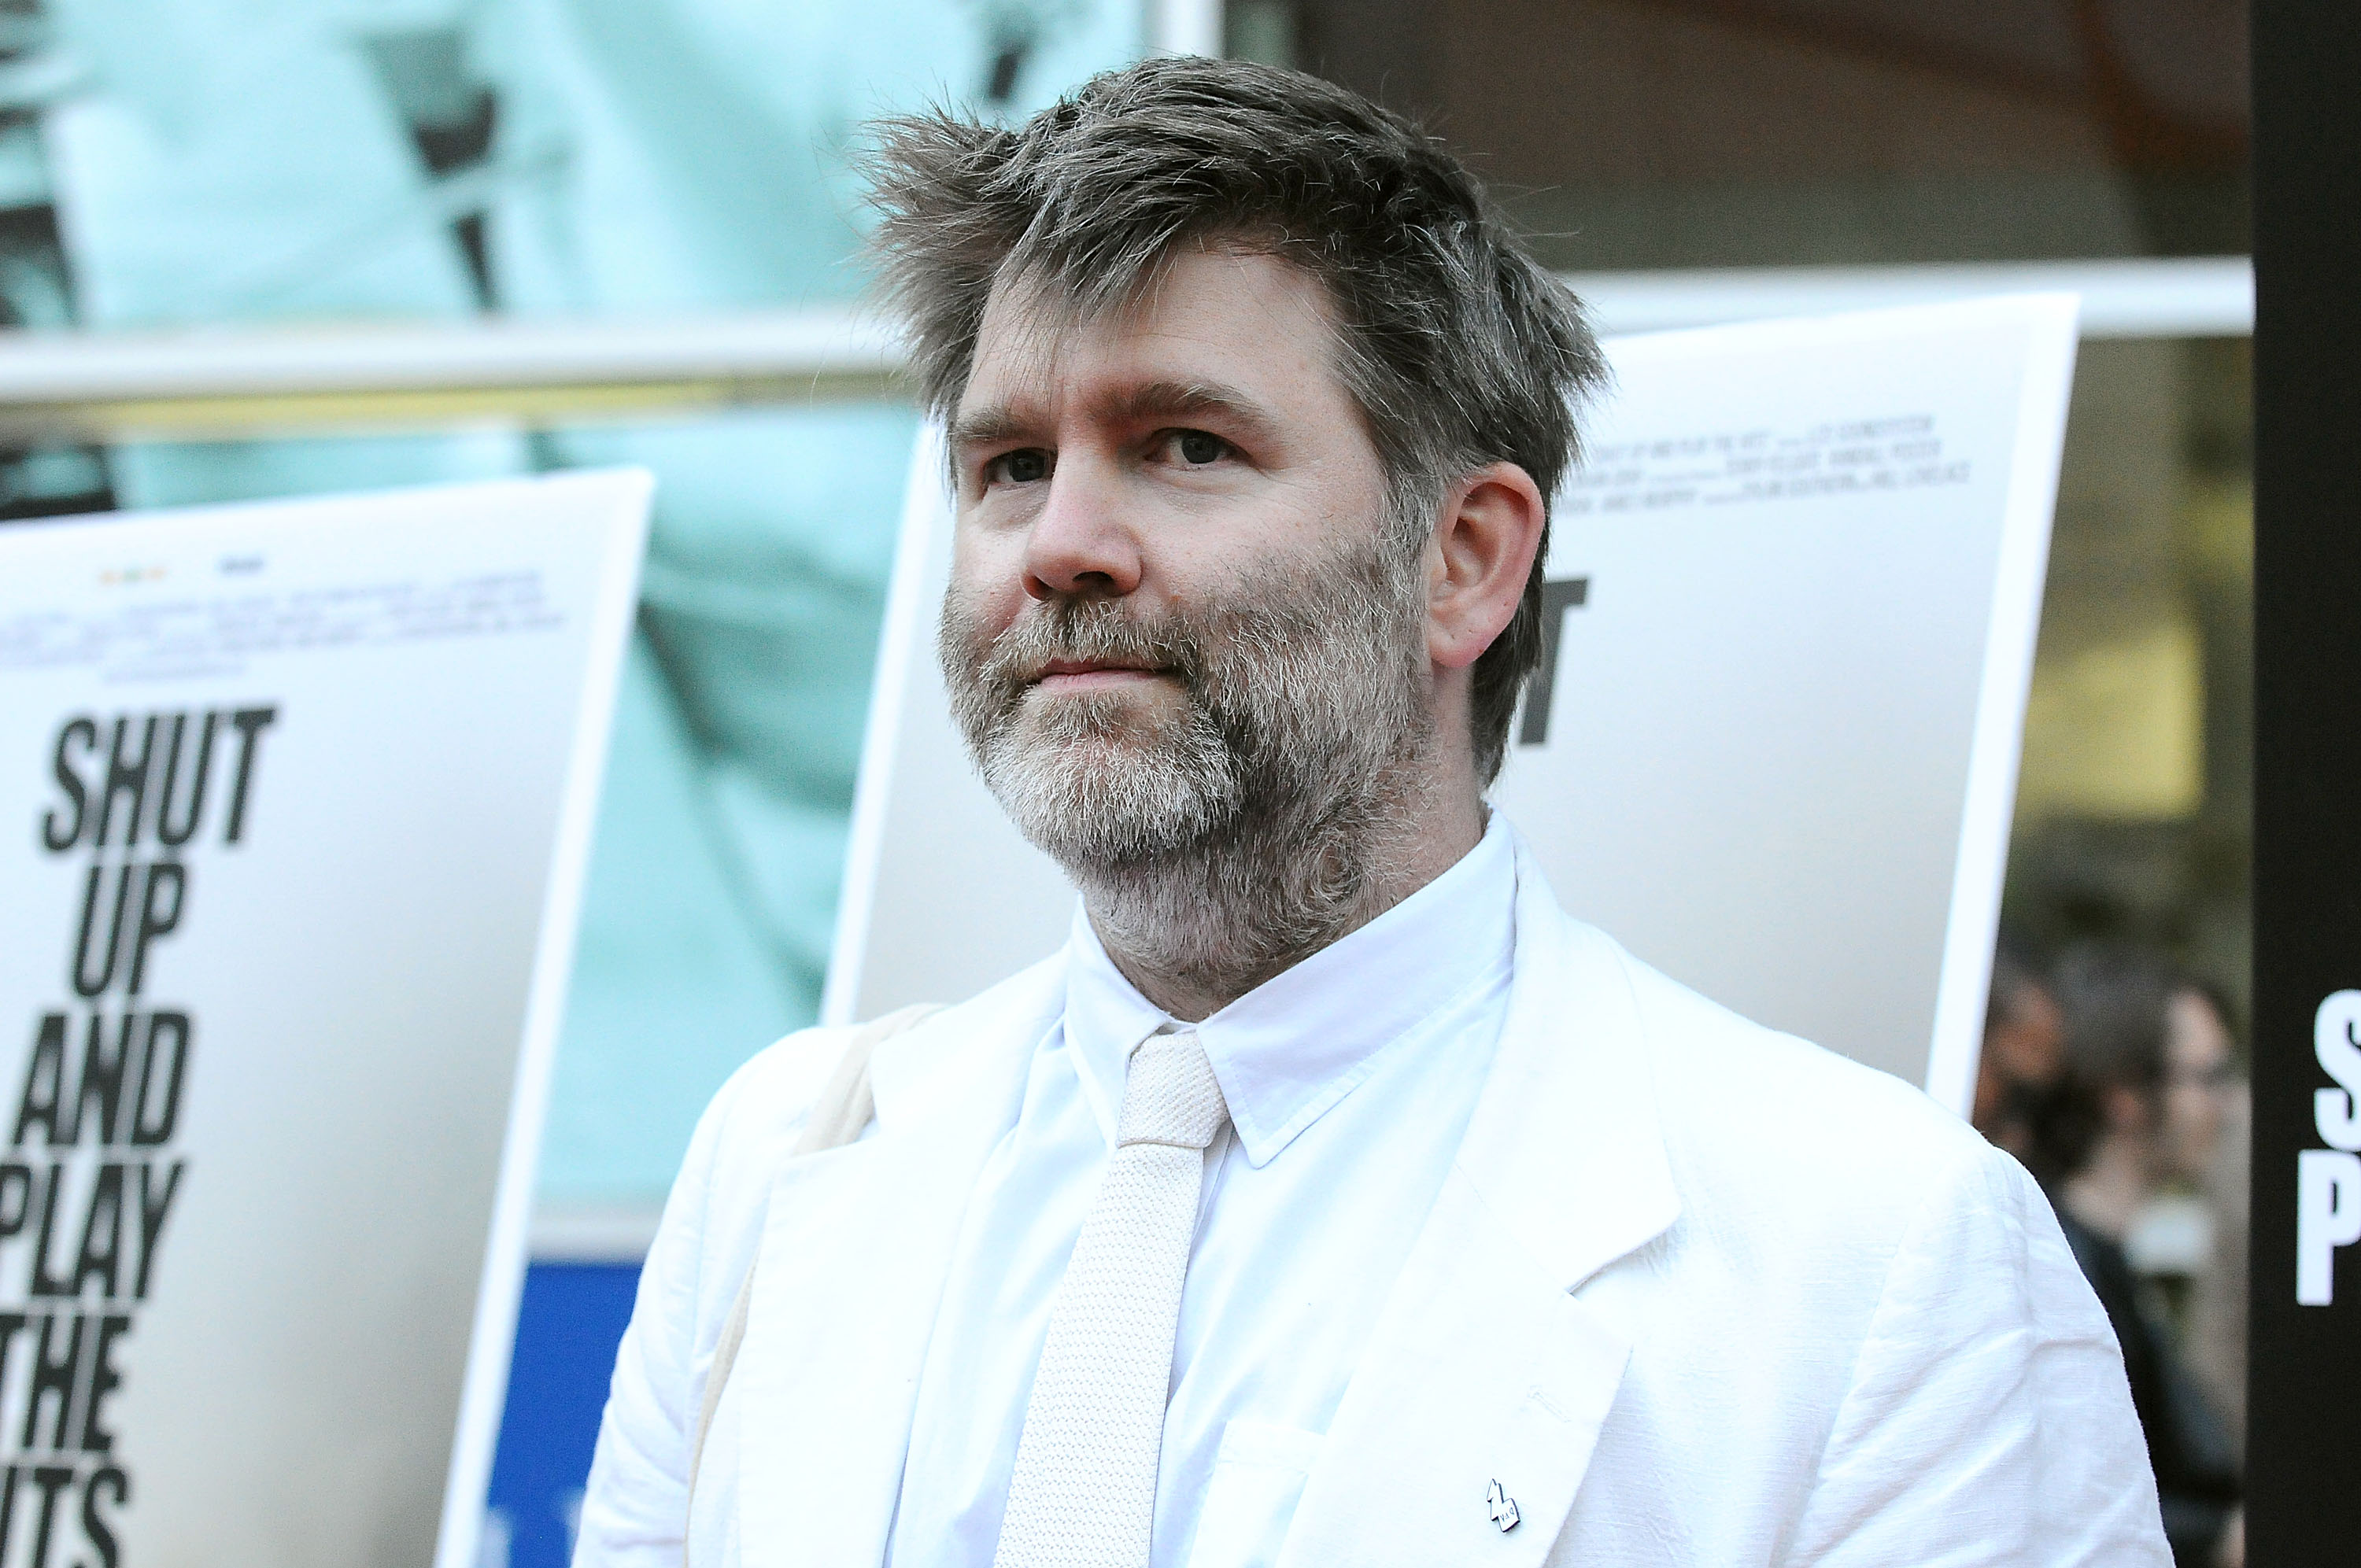 HOLLYWOOD, CA - JULY 17:  James Murphy of LCD Soundsystem attends the premiere of 'Shut Up And Play The Hits' at ArcLight Cin